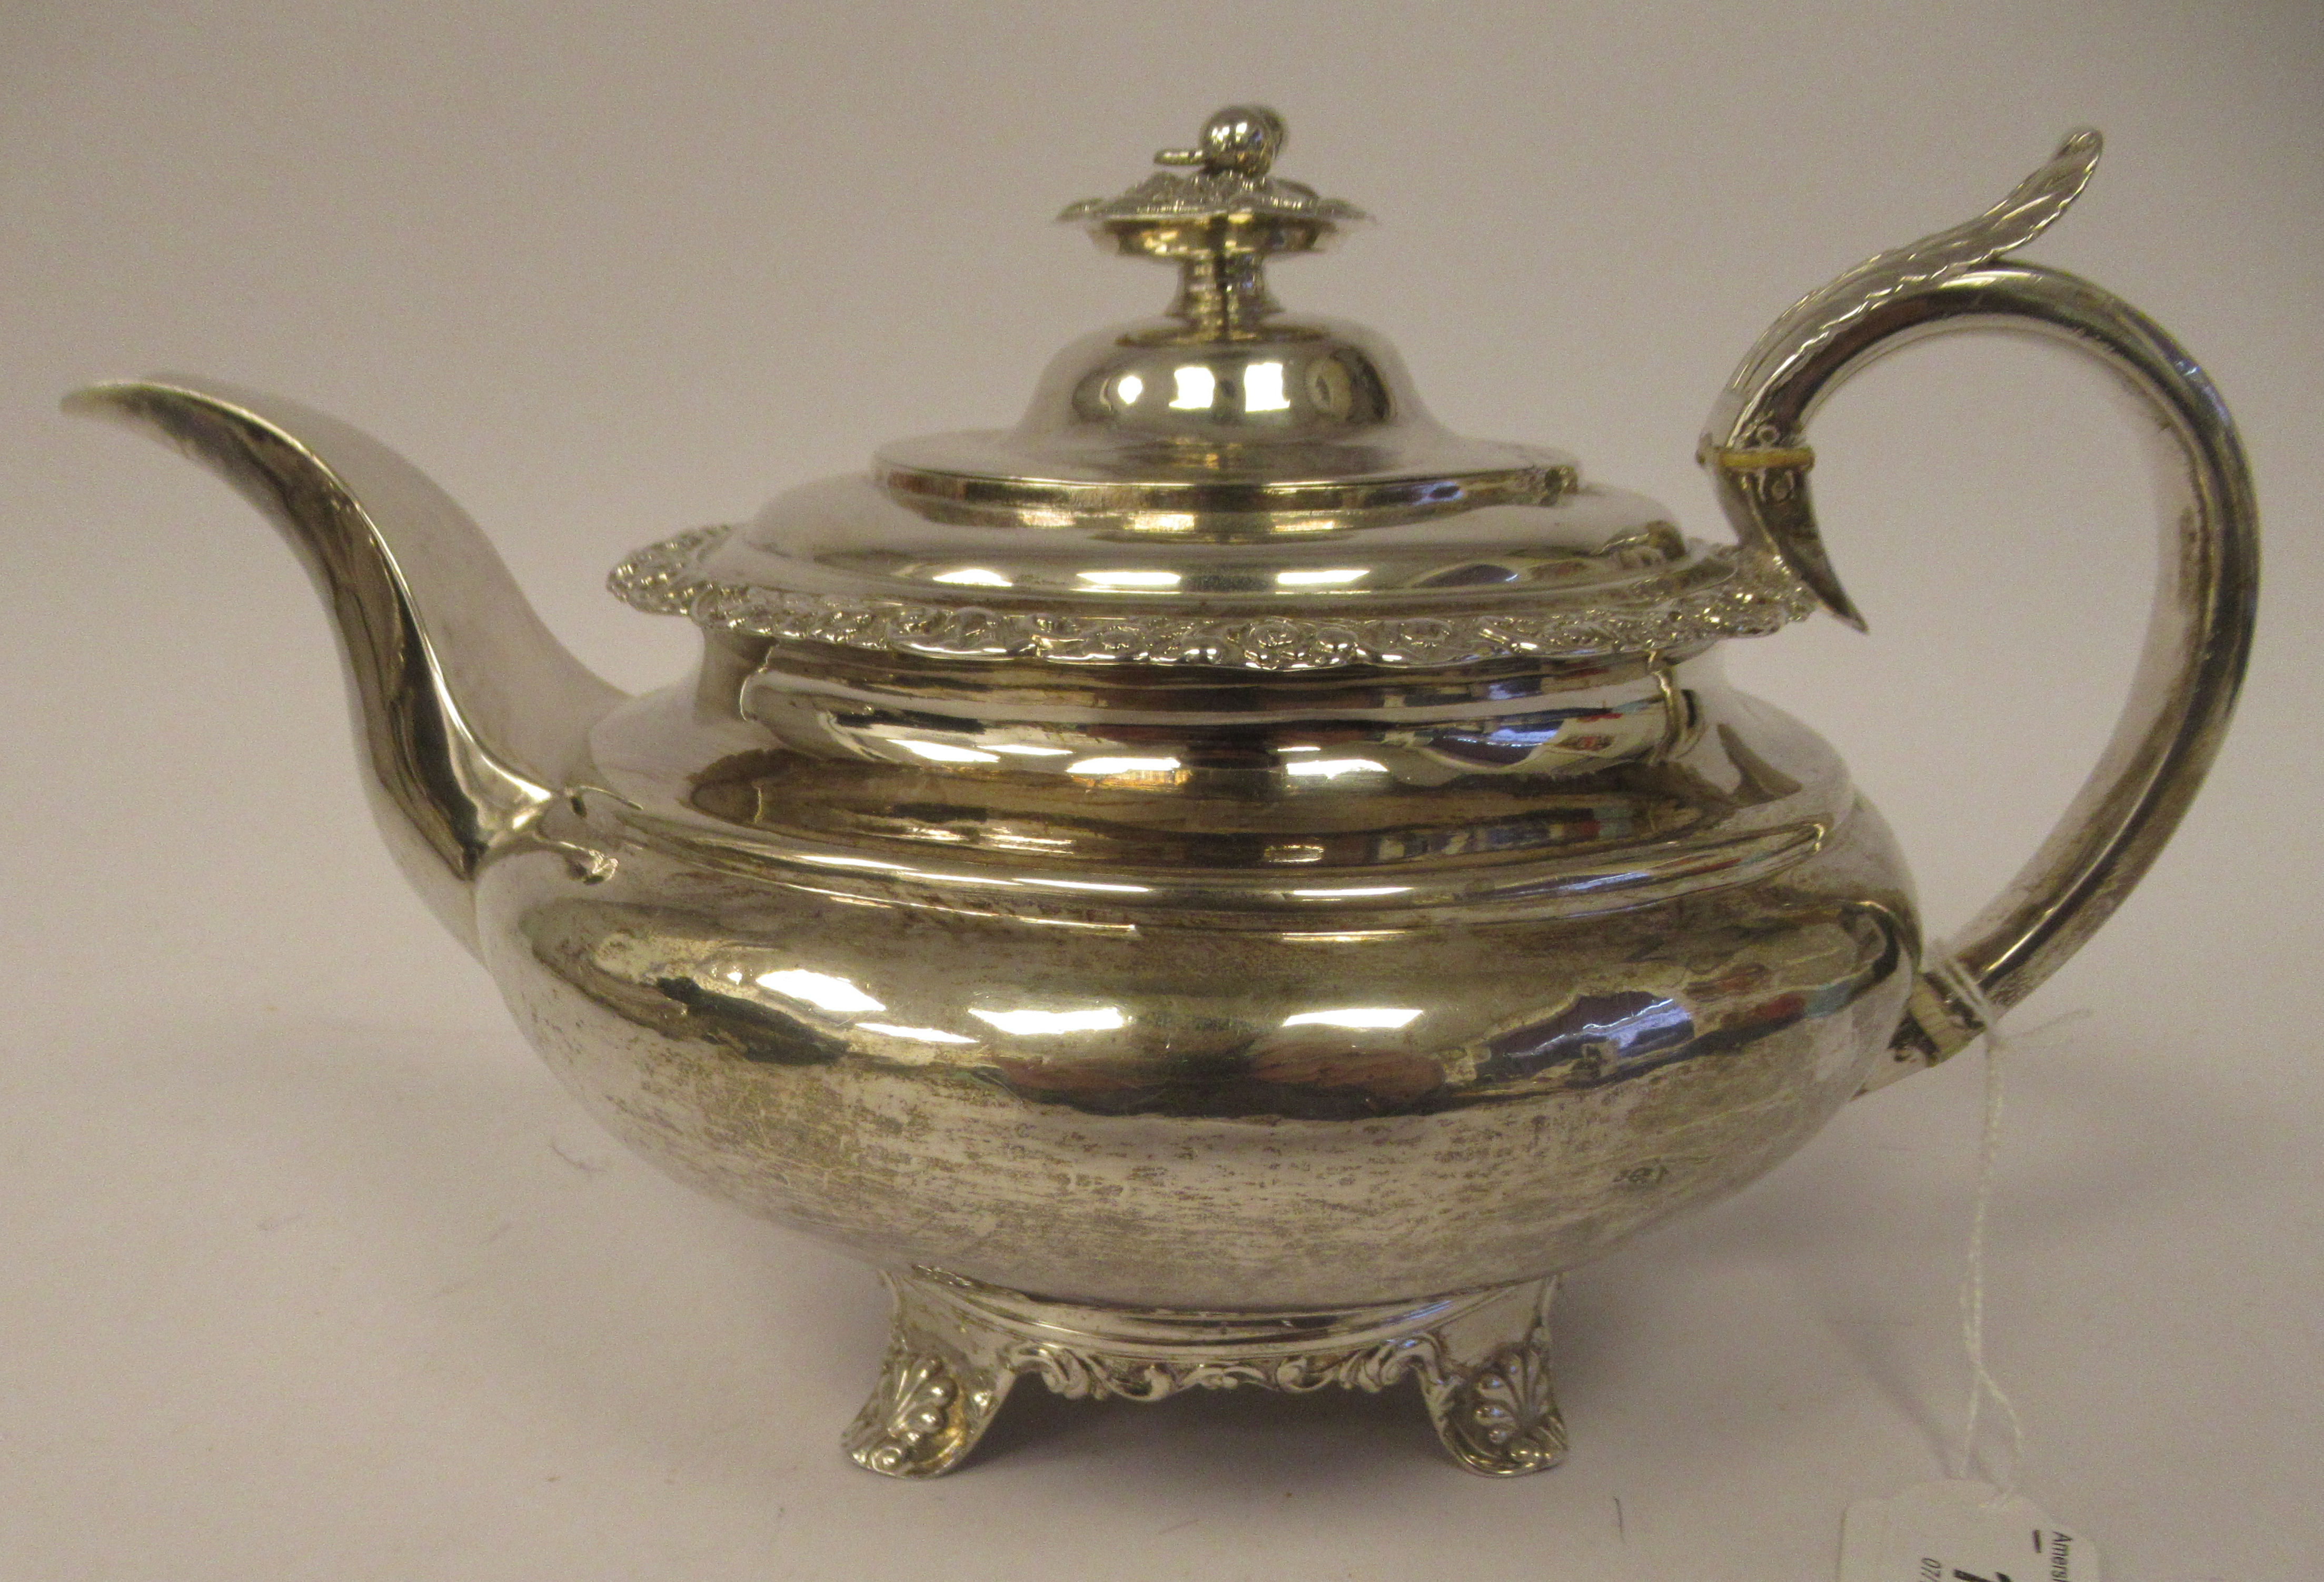 A George III silver teapot of demi-reeded squat, bulbous, oval form with gadrooned and cast